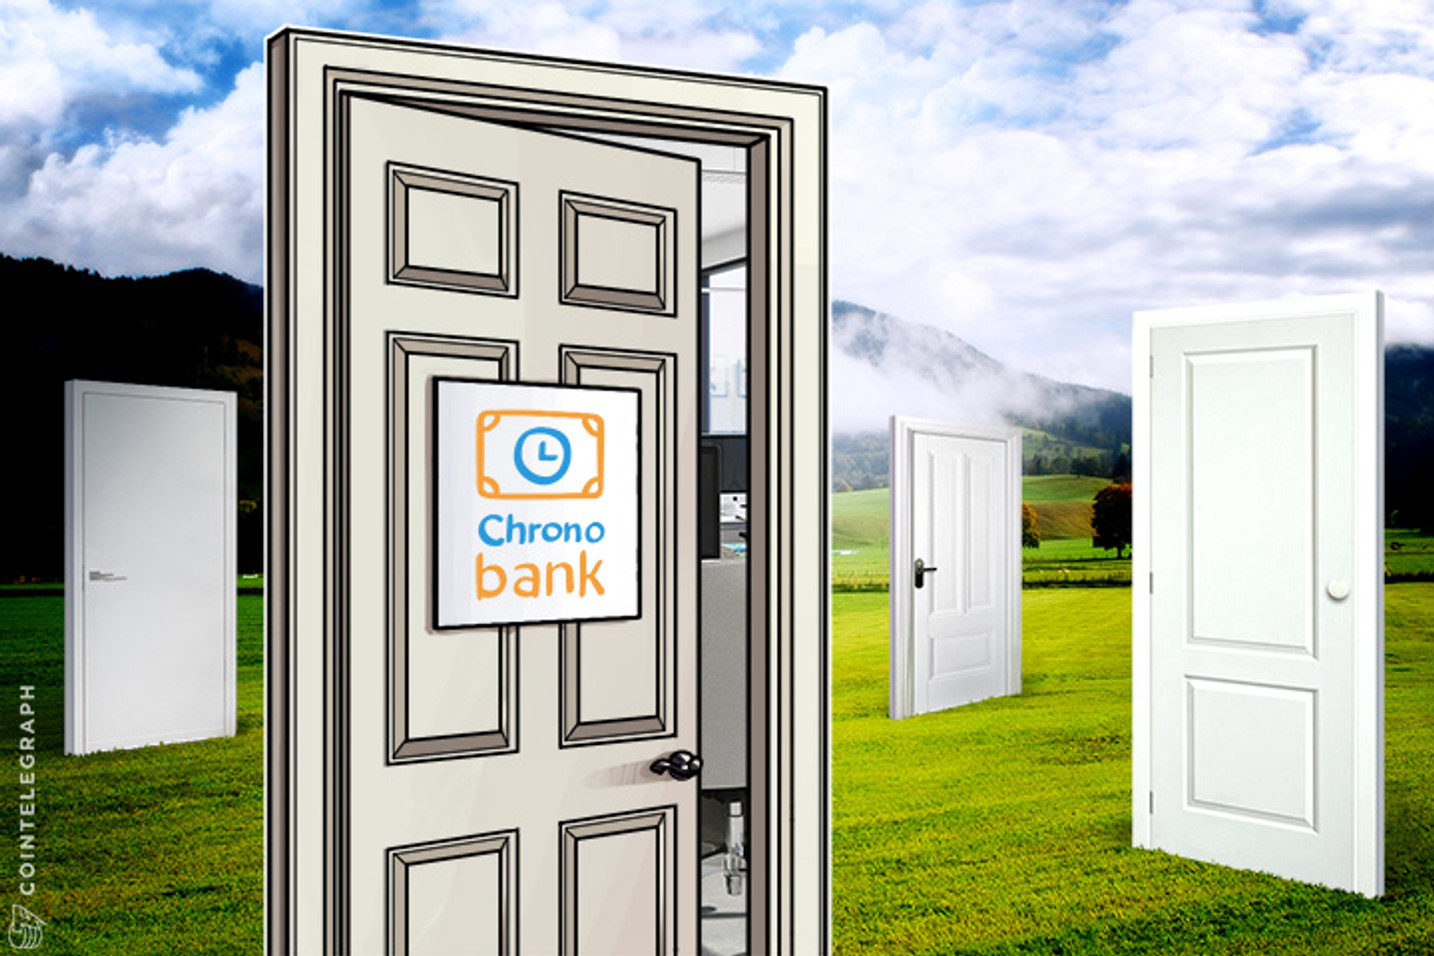 Using Ethereum, ChronoBank Aims to Become Uber of Recruitment